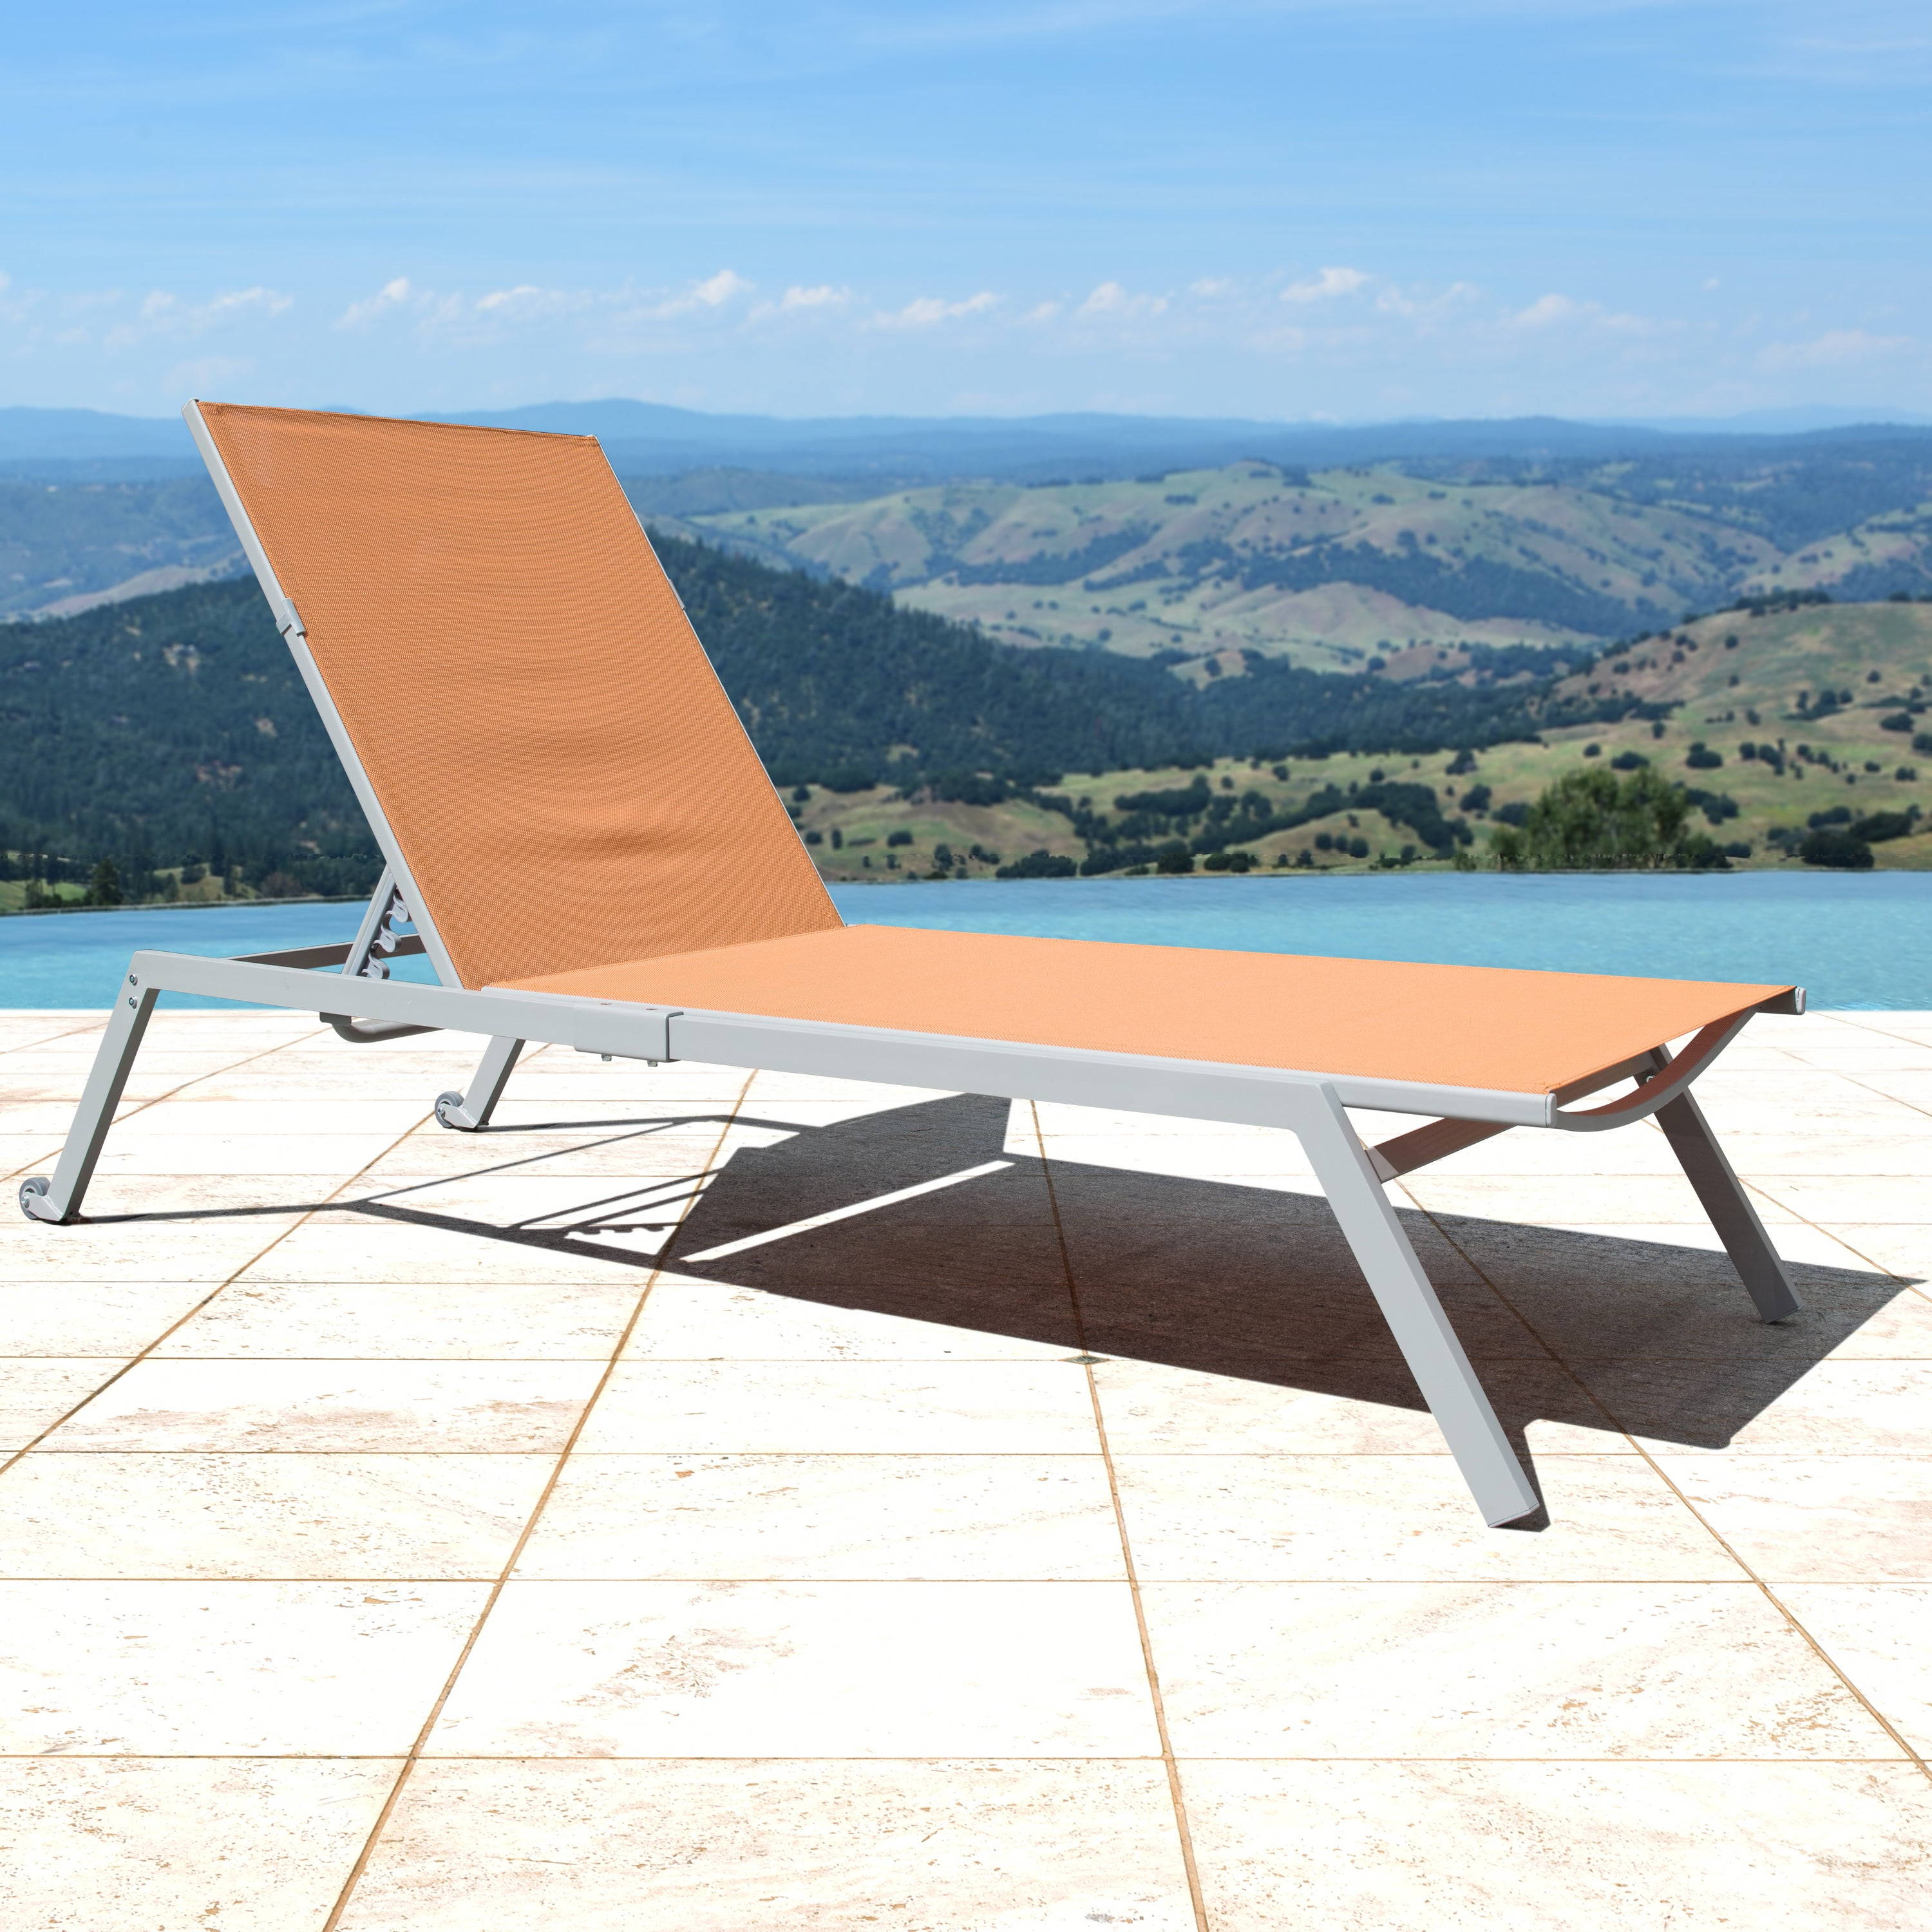 Fabric Reclining Outdoor Chaise Lounges Pertaining To Most Recently Released Corvus Torino Sling Fabric Reclining Outdoor Chaise Lounges (set Of 4) (View 6 of 25)